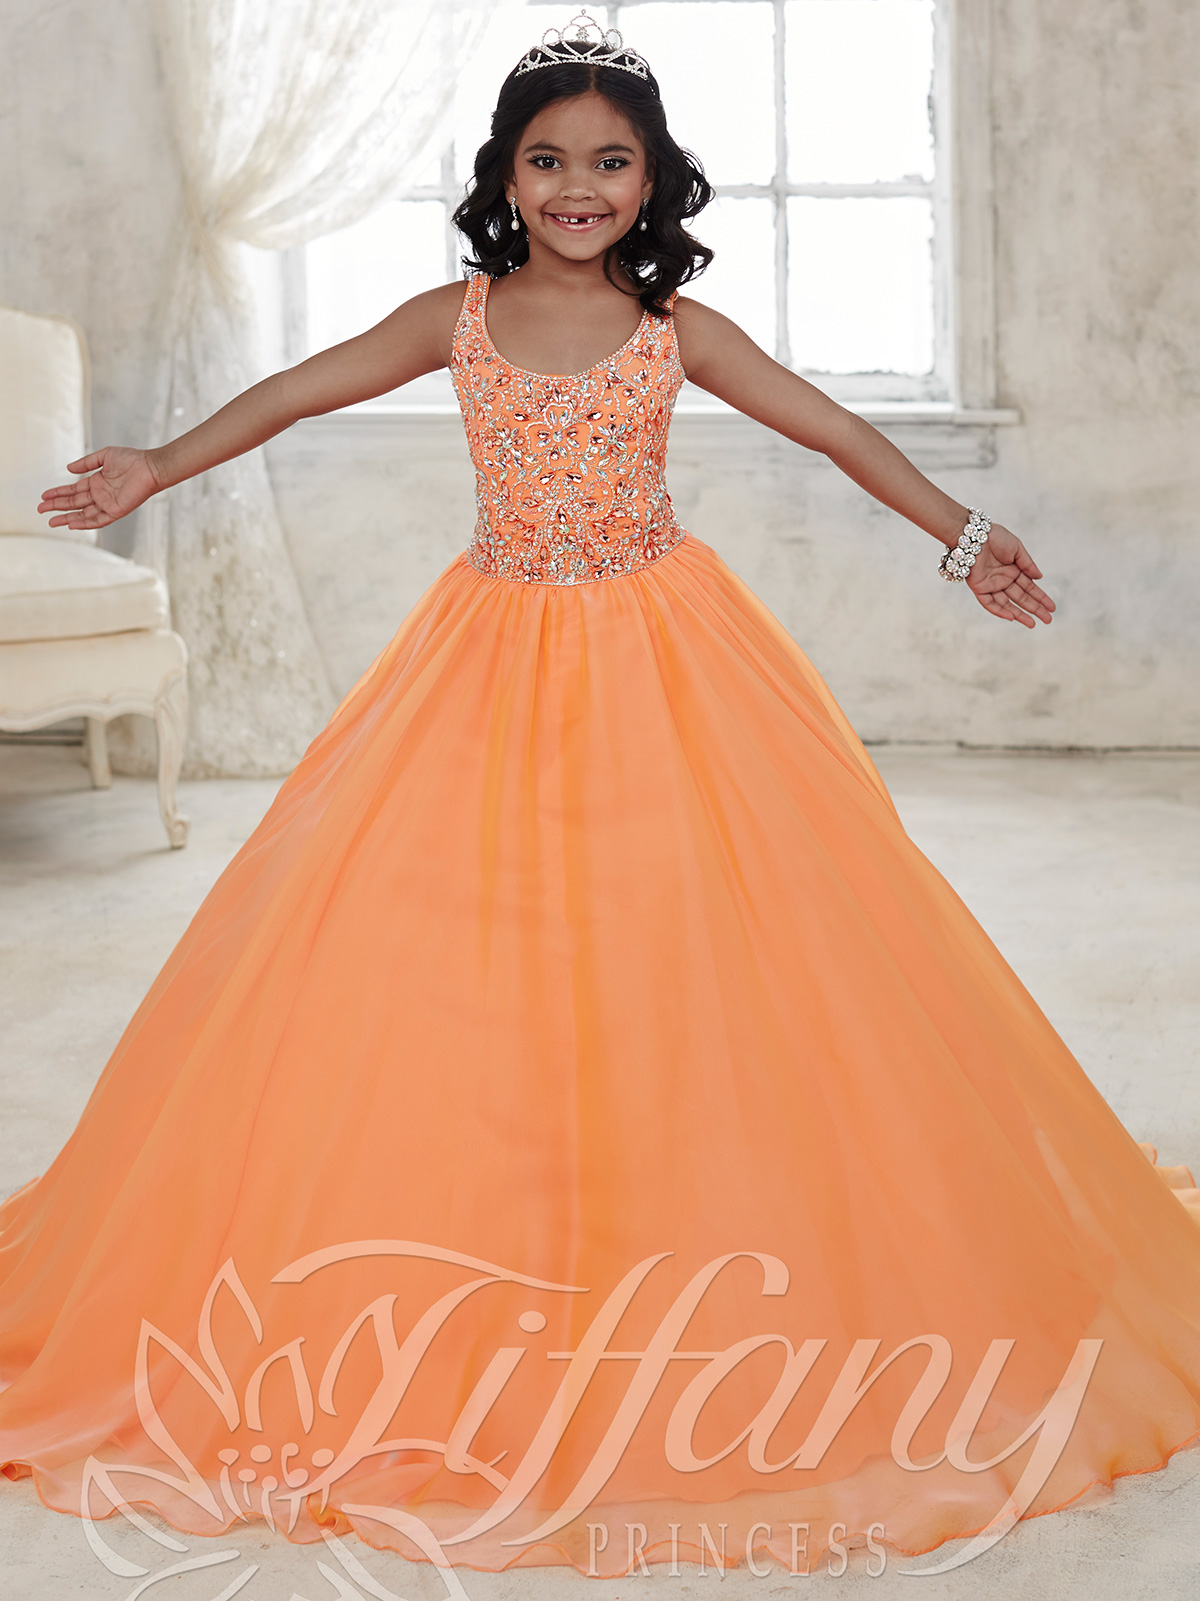 Tiffany Princess 13441 Scoop Neckline Girls Pageant Dress ...